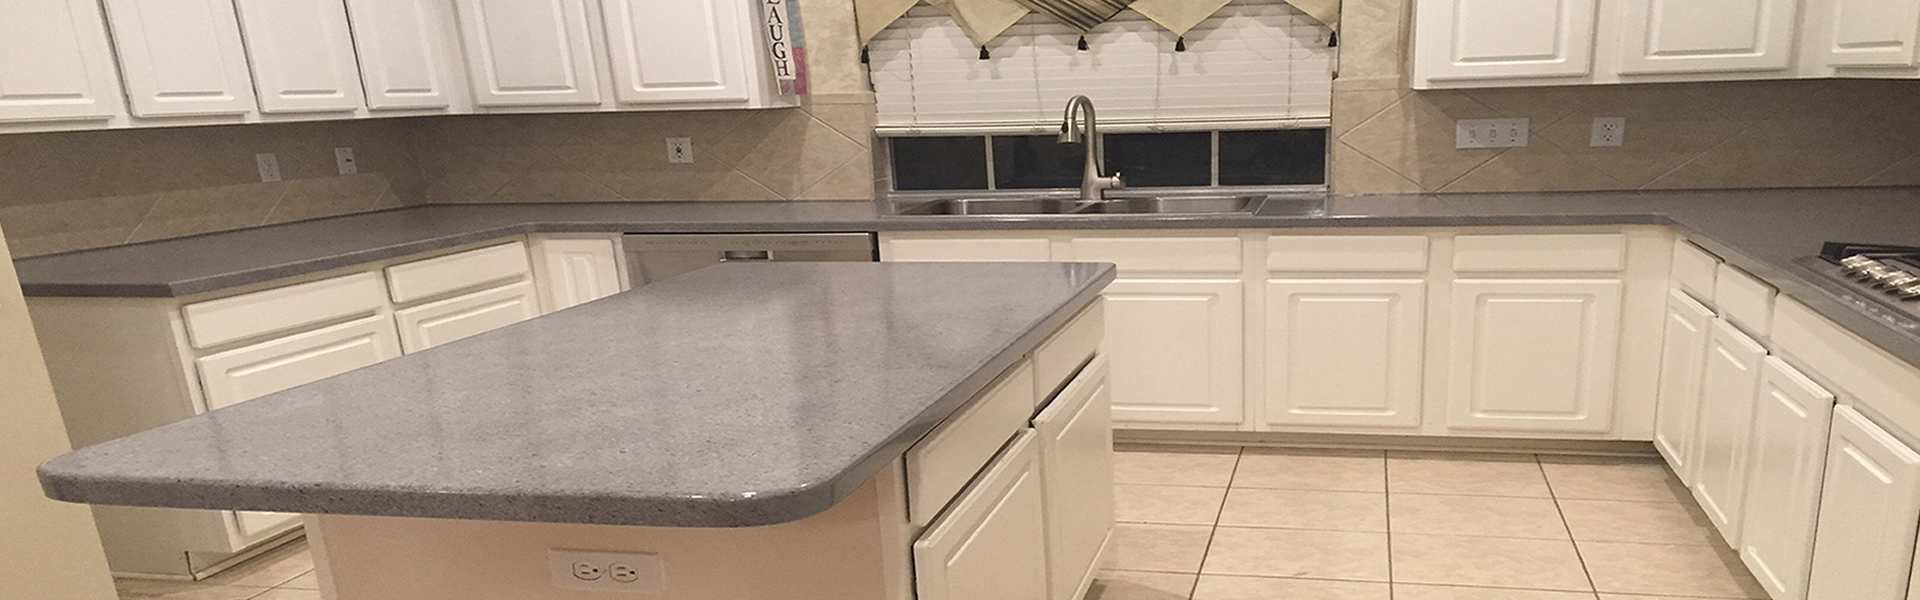 BATHTUB REFINISHING IN NEW JERSEY, CULTURED AND LAMINATE FORMICA,  AFFORDABLE CABINETS AND COUNTERTOPS RESURFACING, Cabinets Refacing, Tile,  ...